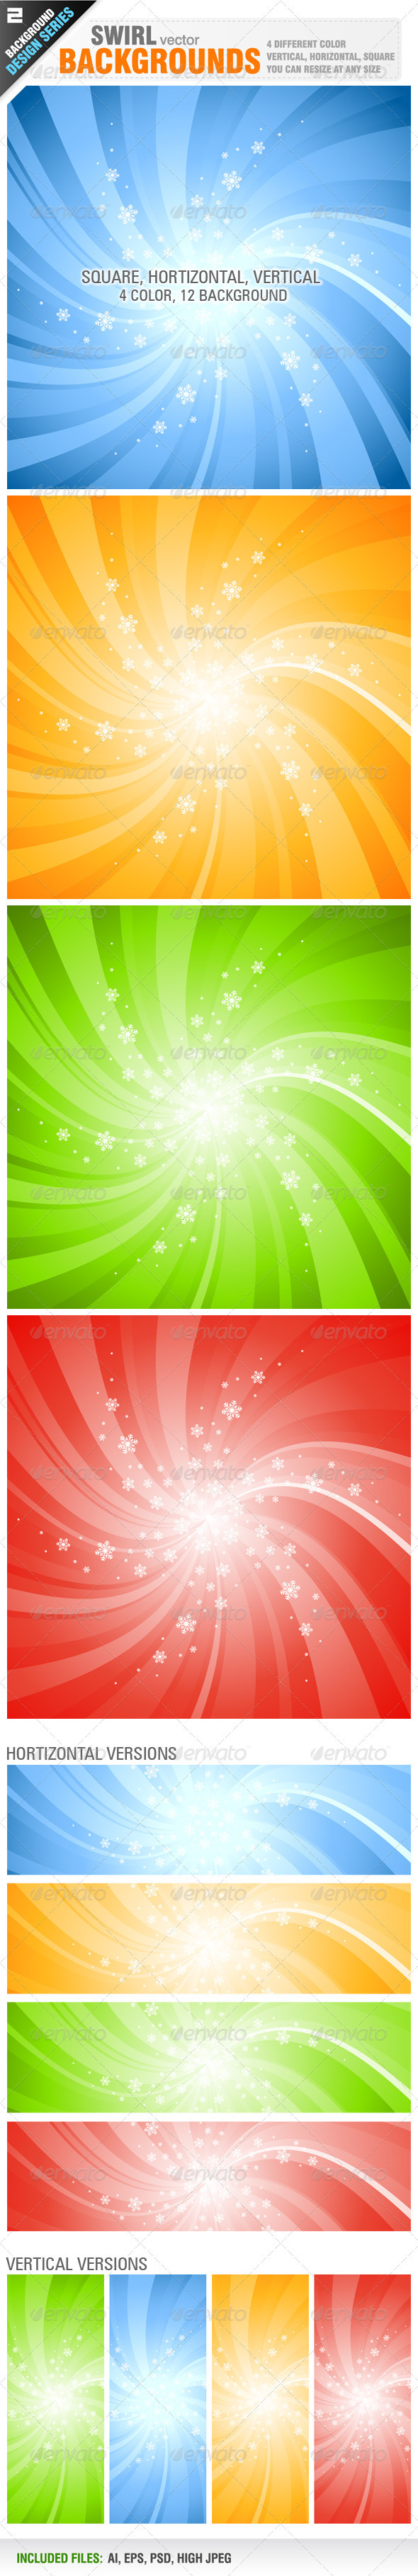 Swirl Backgrounds - Backgrounds Decorative